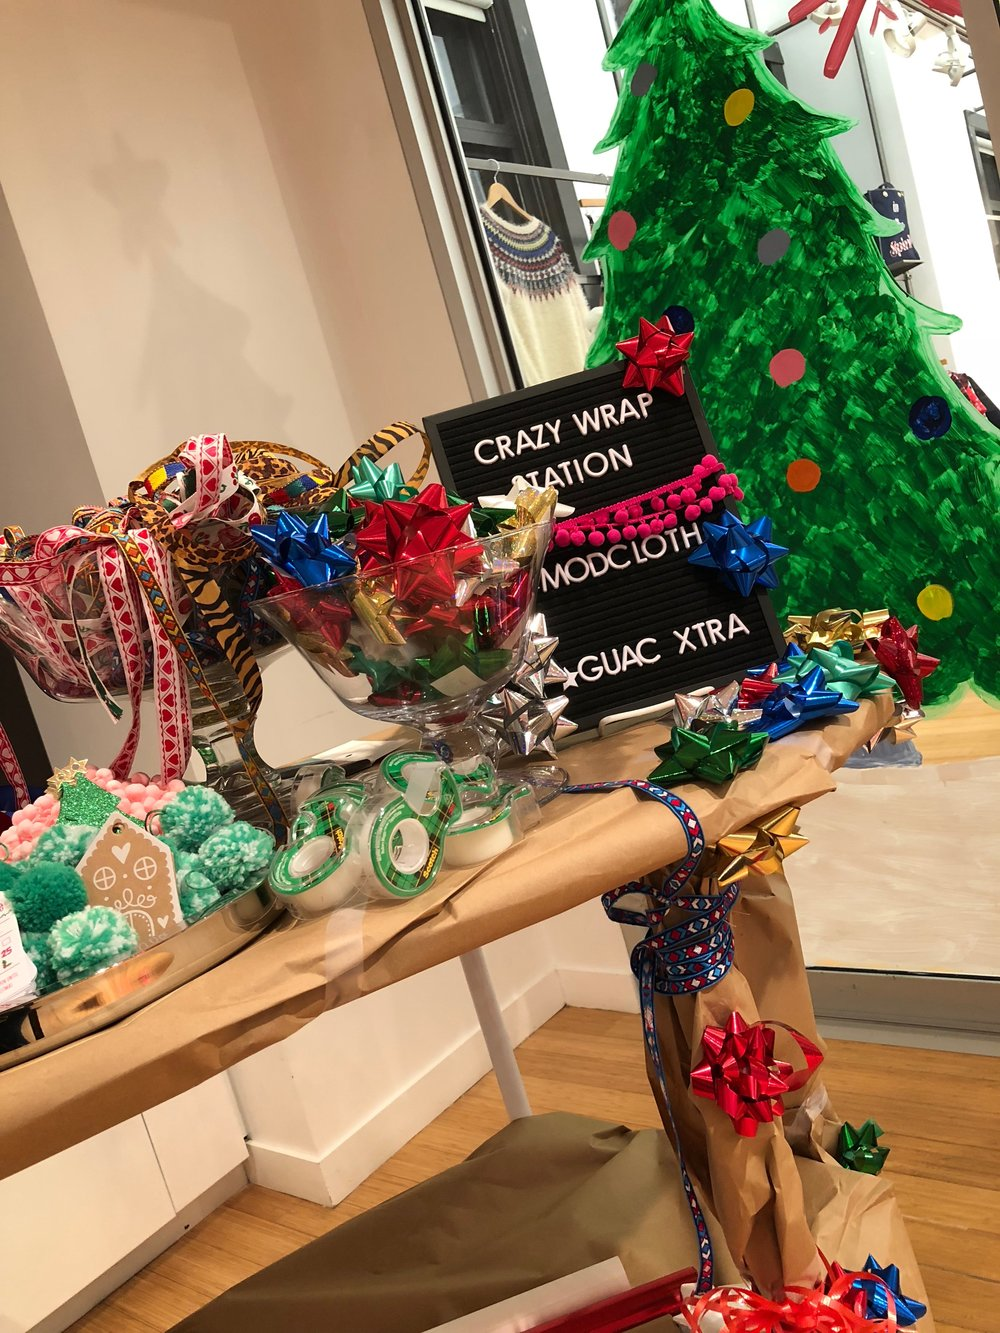 ModCloth Press Event - Ugly Wrapping Station